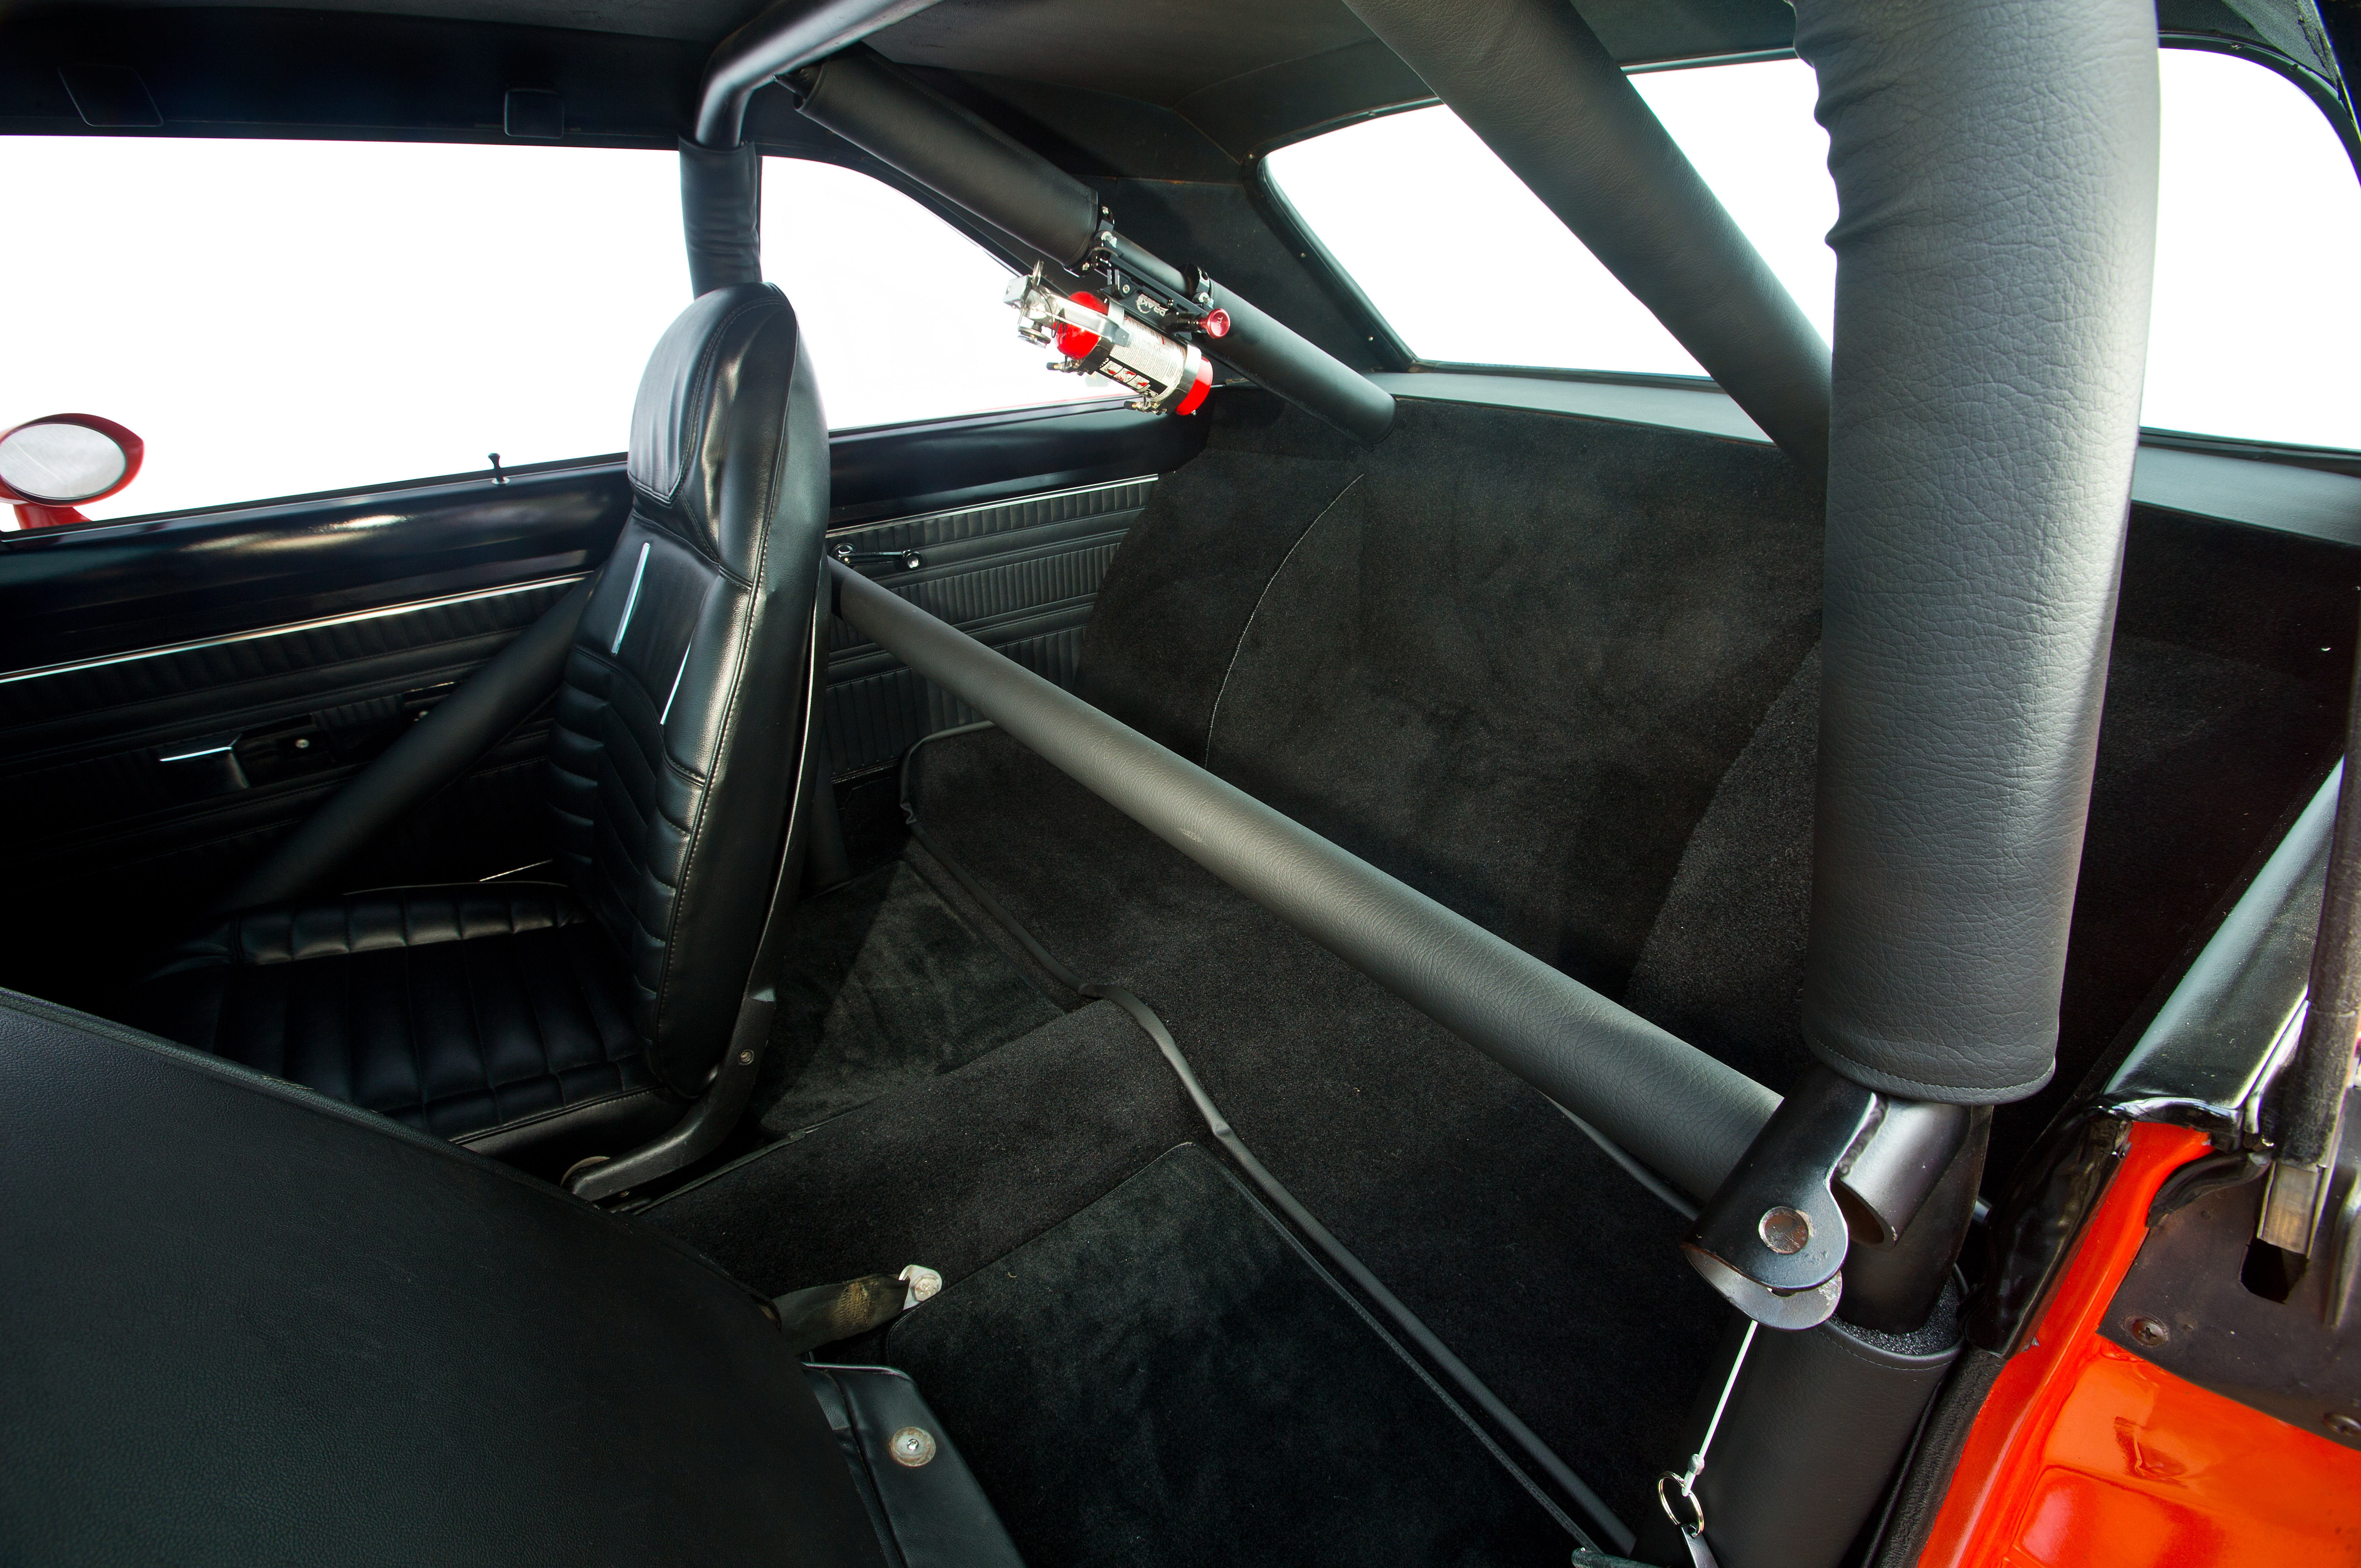 As purchased, the Dart's prior owner didn't bother covering up the tubs with carpet. After installing some sound dampening mat, Larry laid down custom-cut strips of carpet for a more civilized appearance.